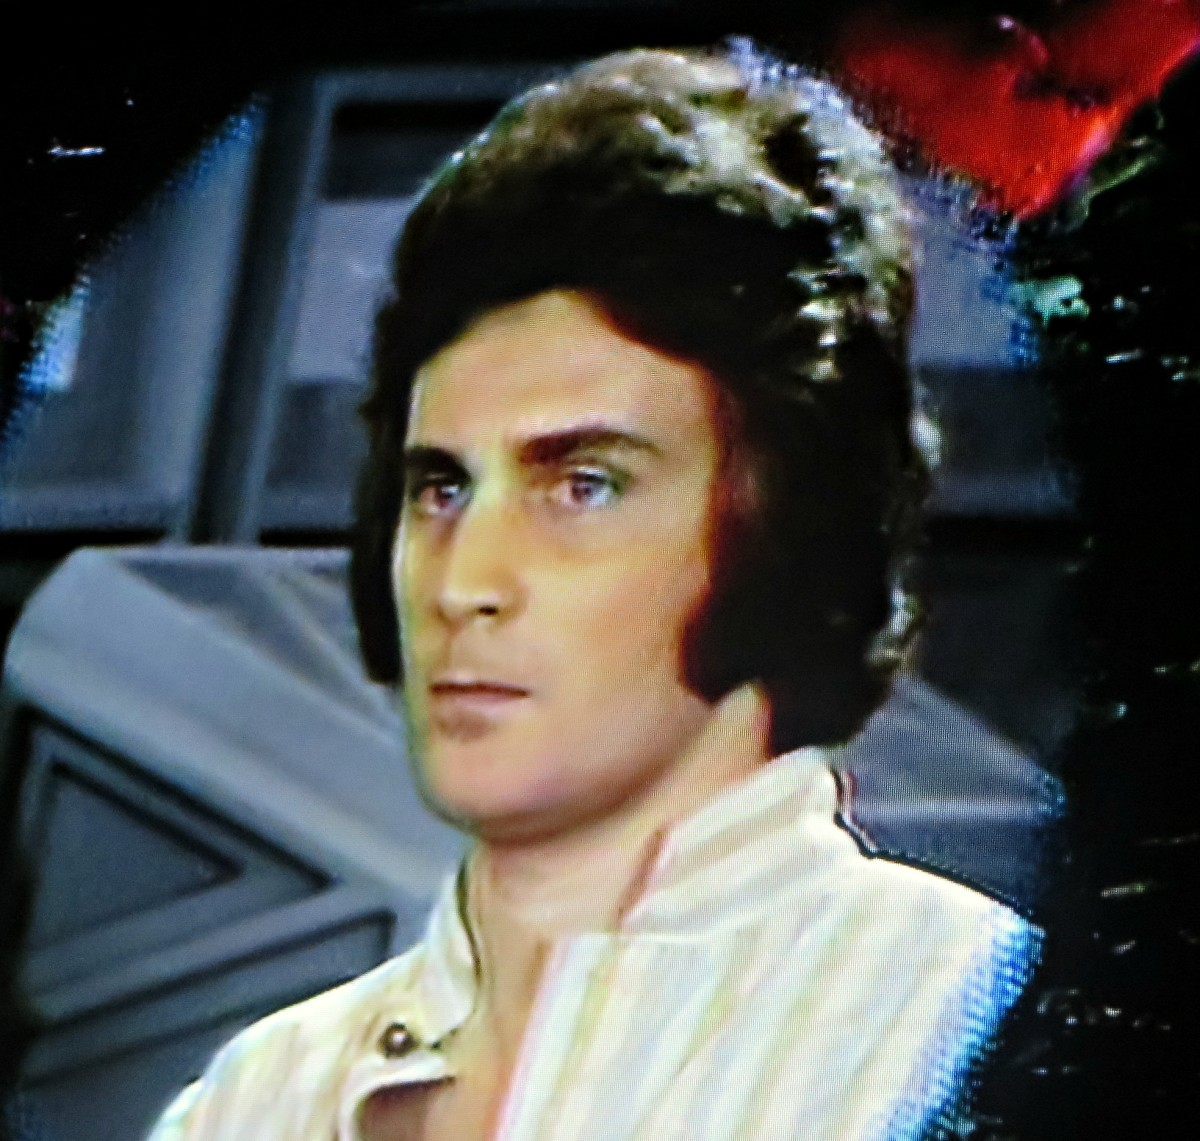 """Robin Ward is the Canadian actor who plays Garth on """"The Starlost"""" he was born in London, England, and is a wonderful television personality. He is known for hosting the well know game show, """"Guess What?"""" in Canada in the 1980s."""